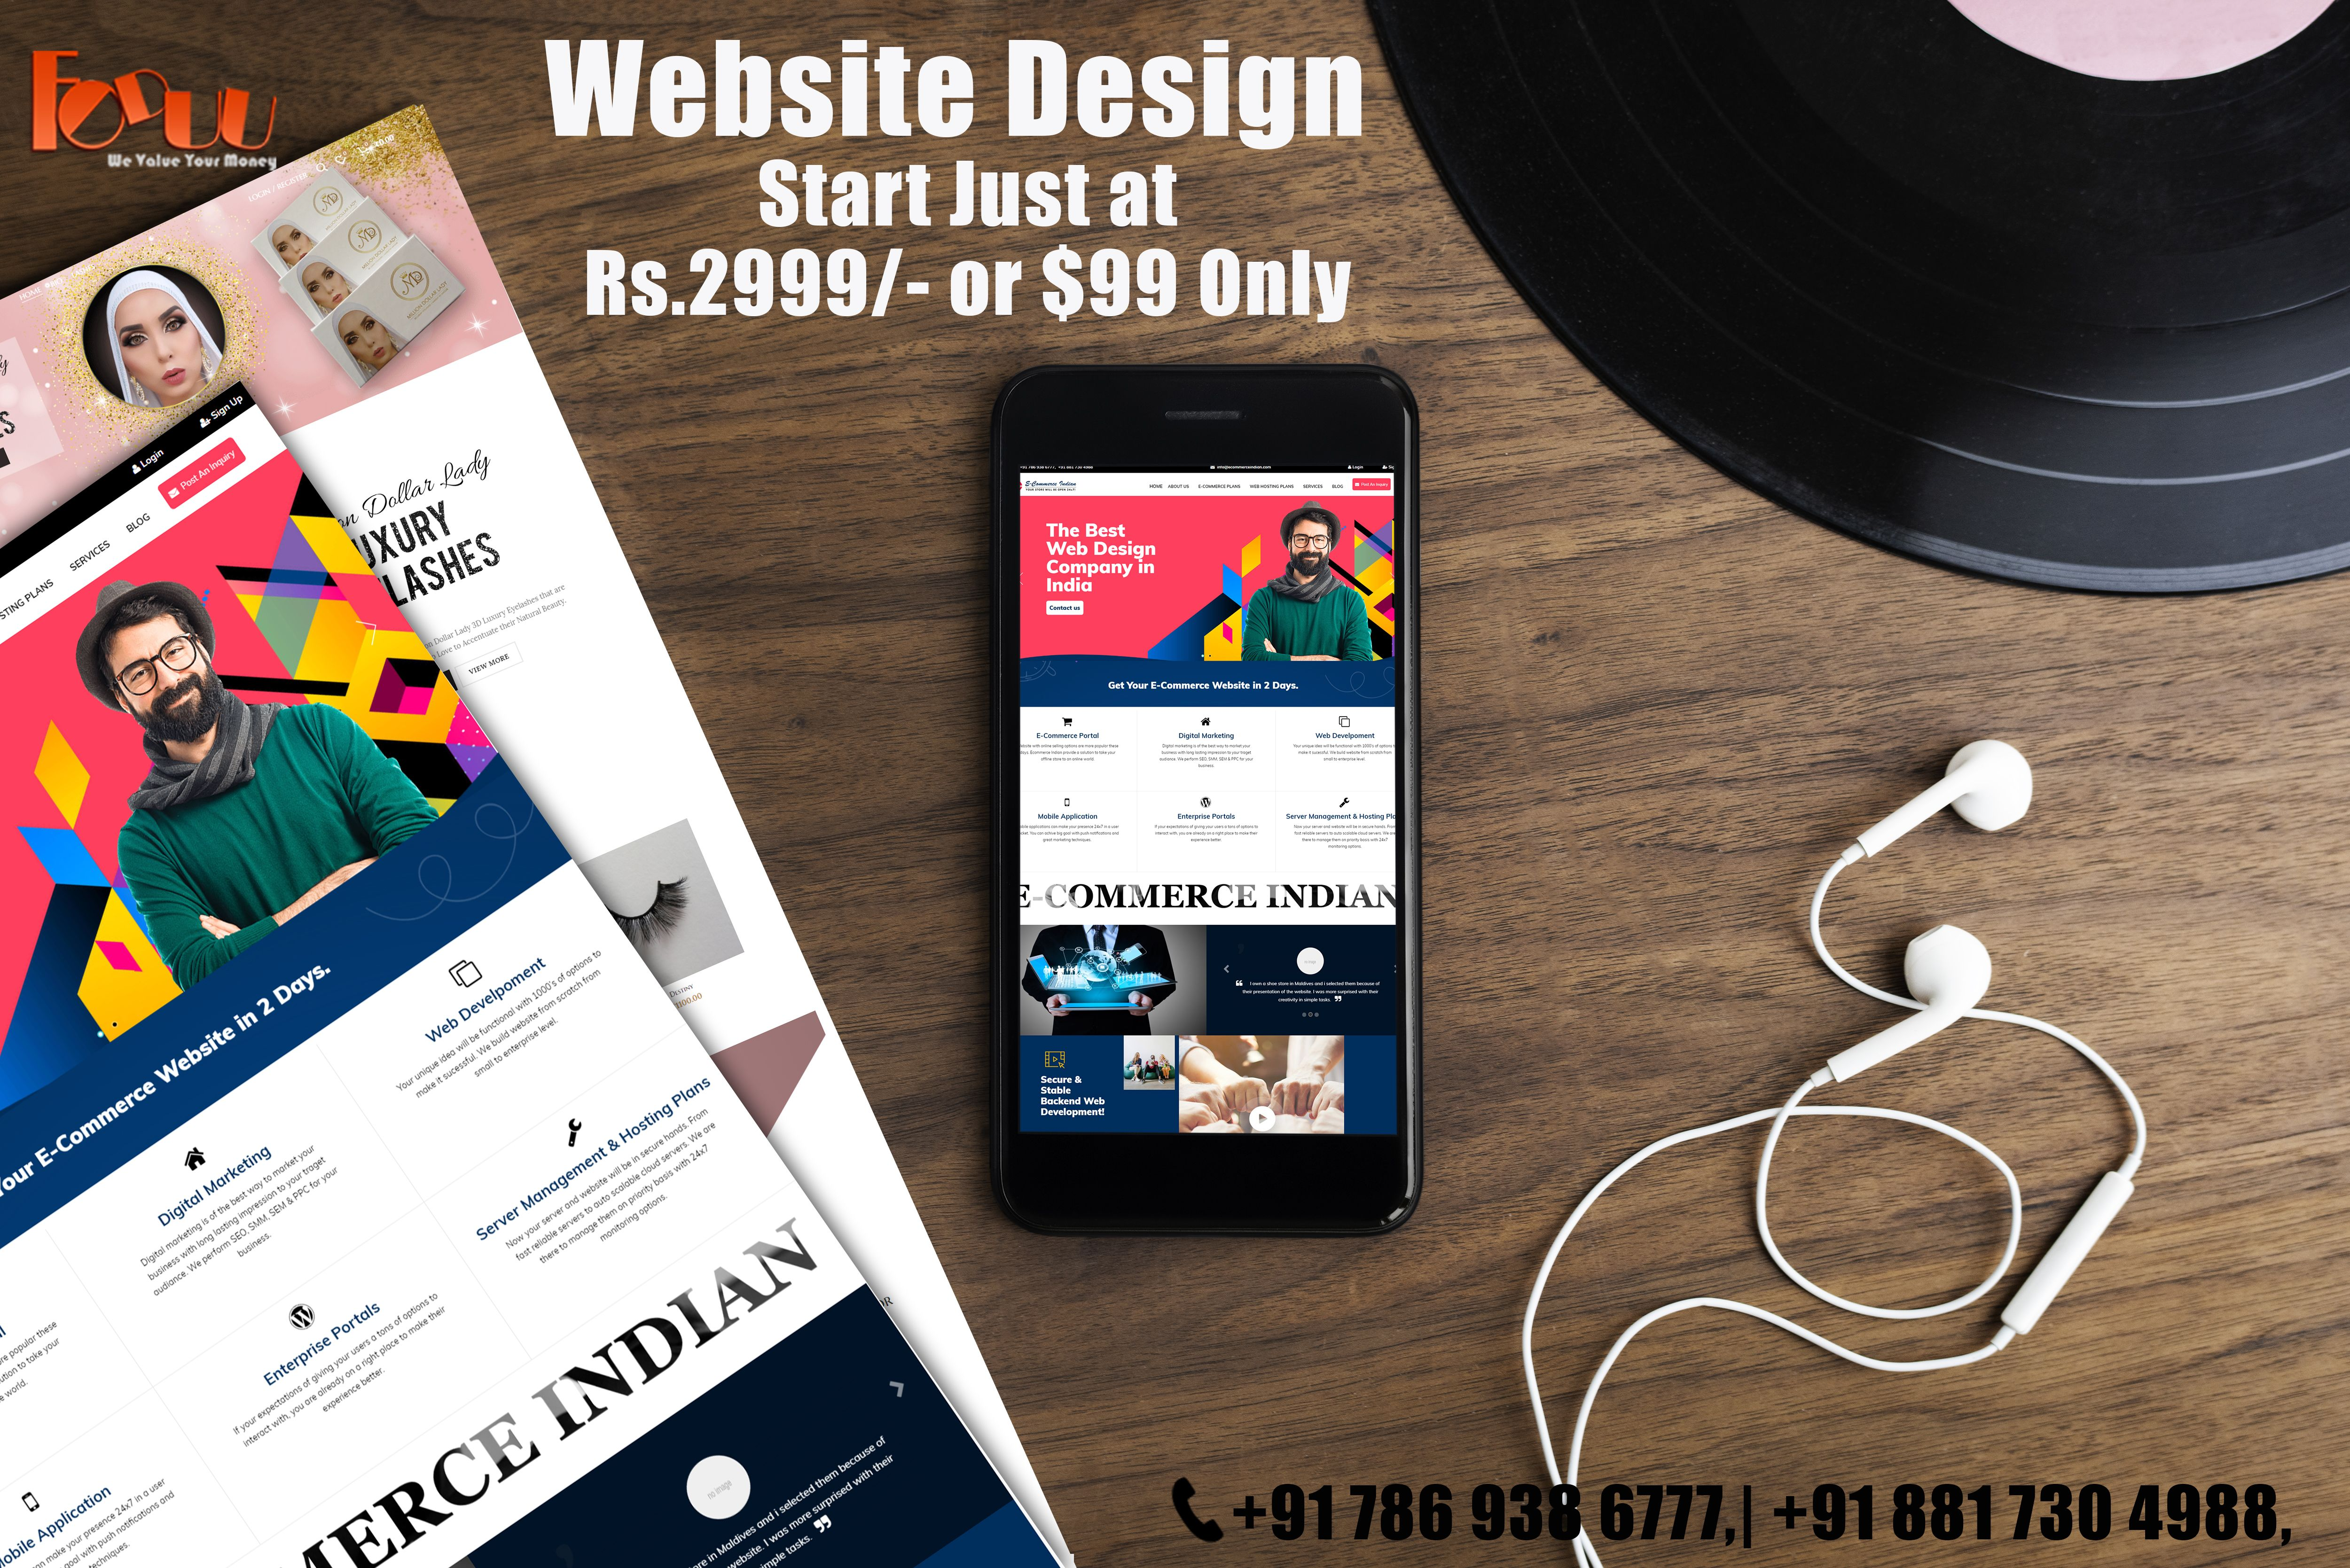 Foduu Is One Of The Leading Website Design Development Company Based In Indore India Offers Quality Web Development Design Web Design Website Design Company